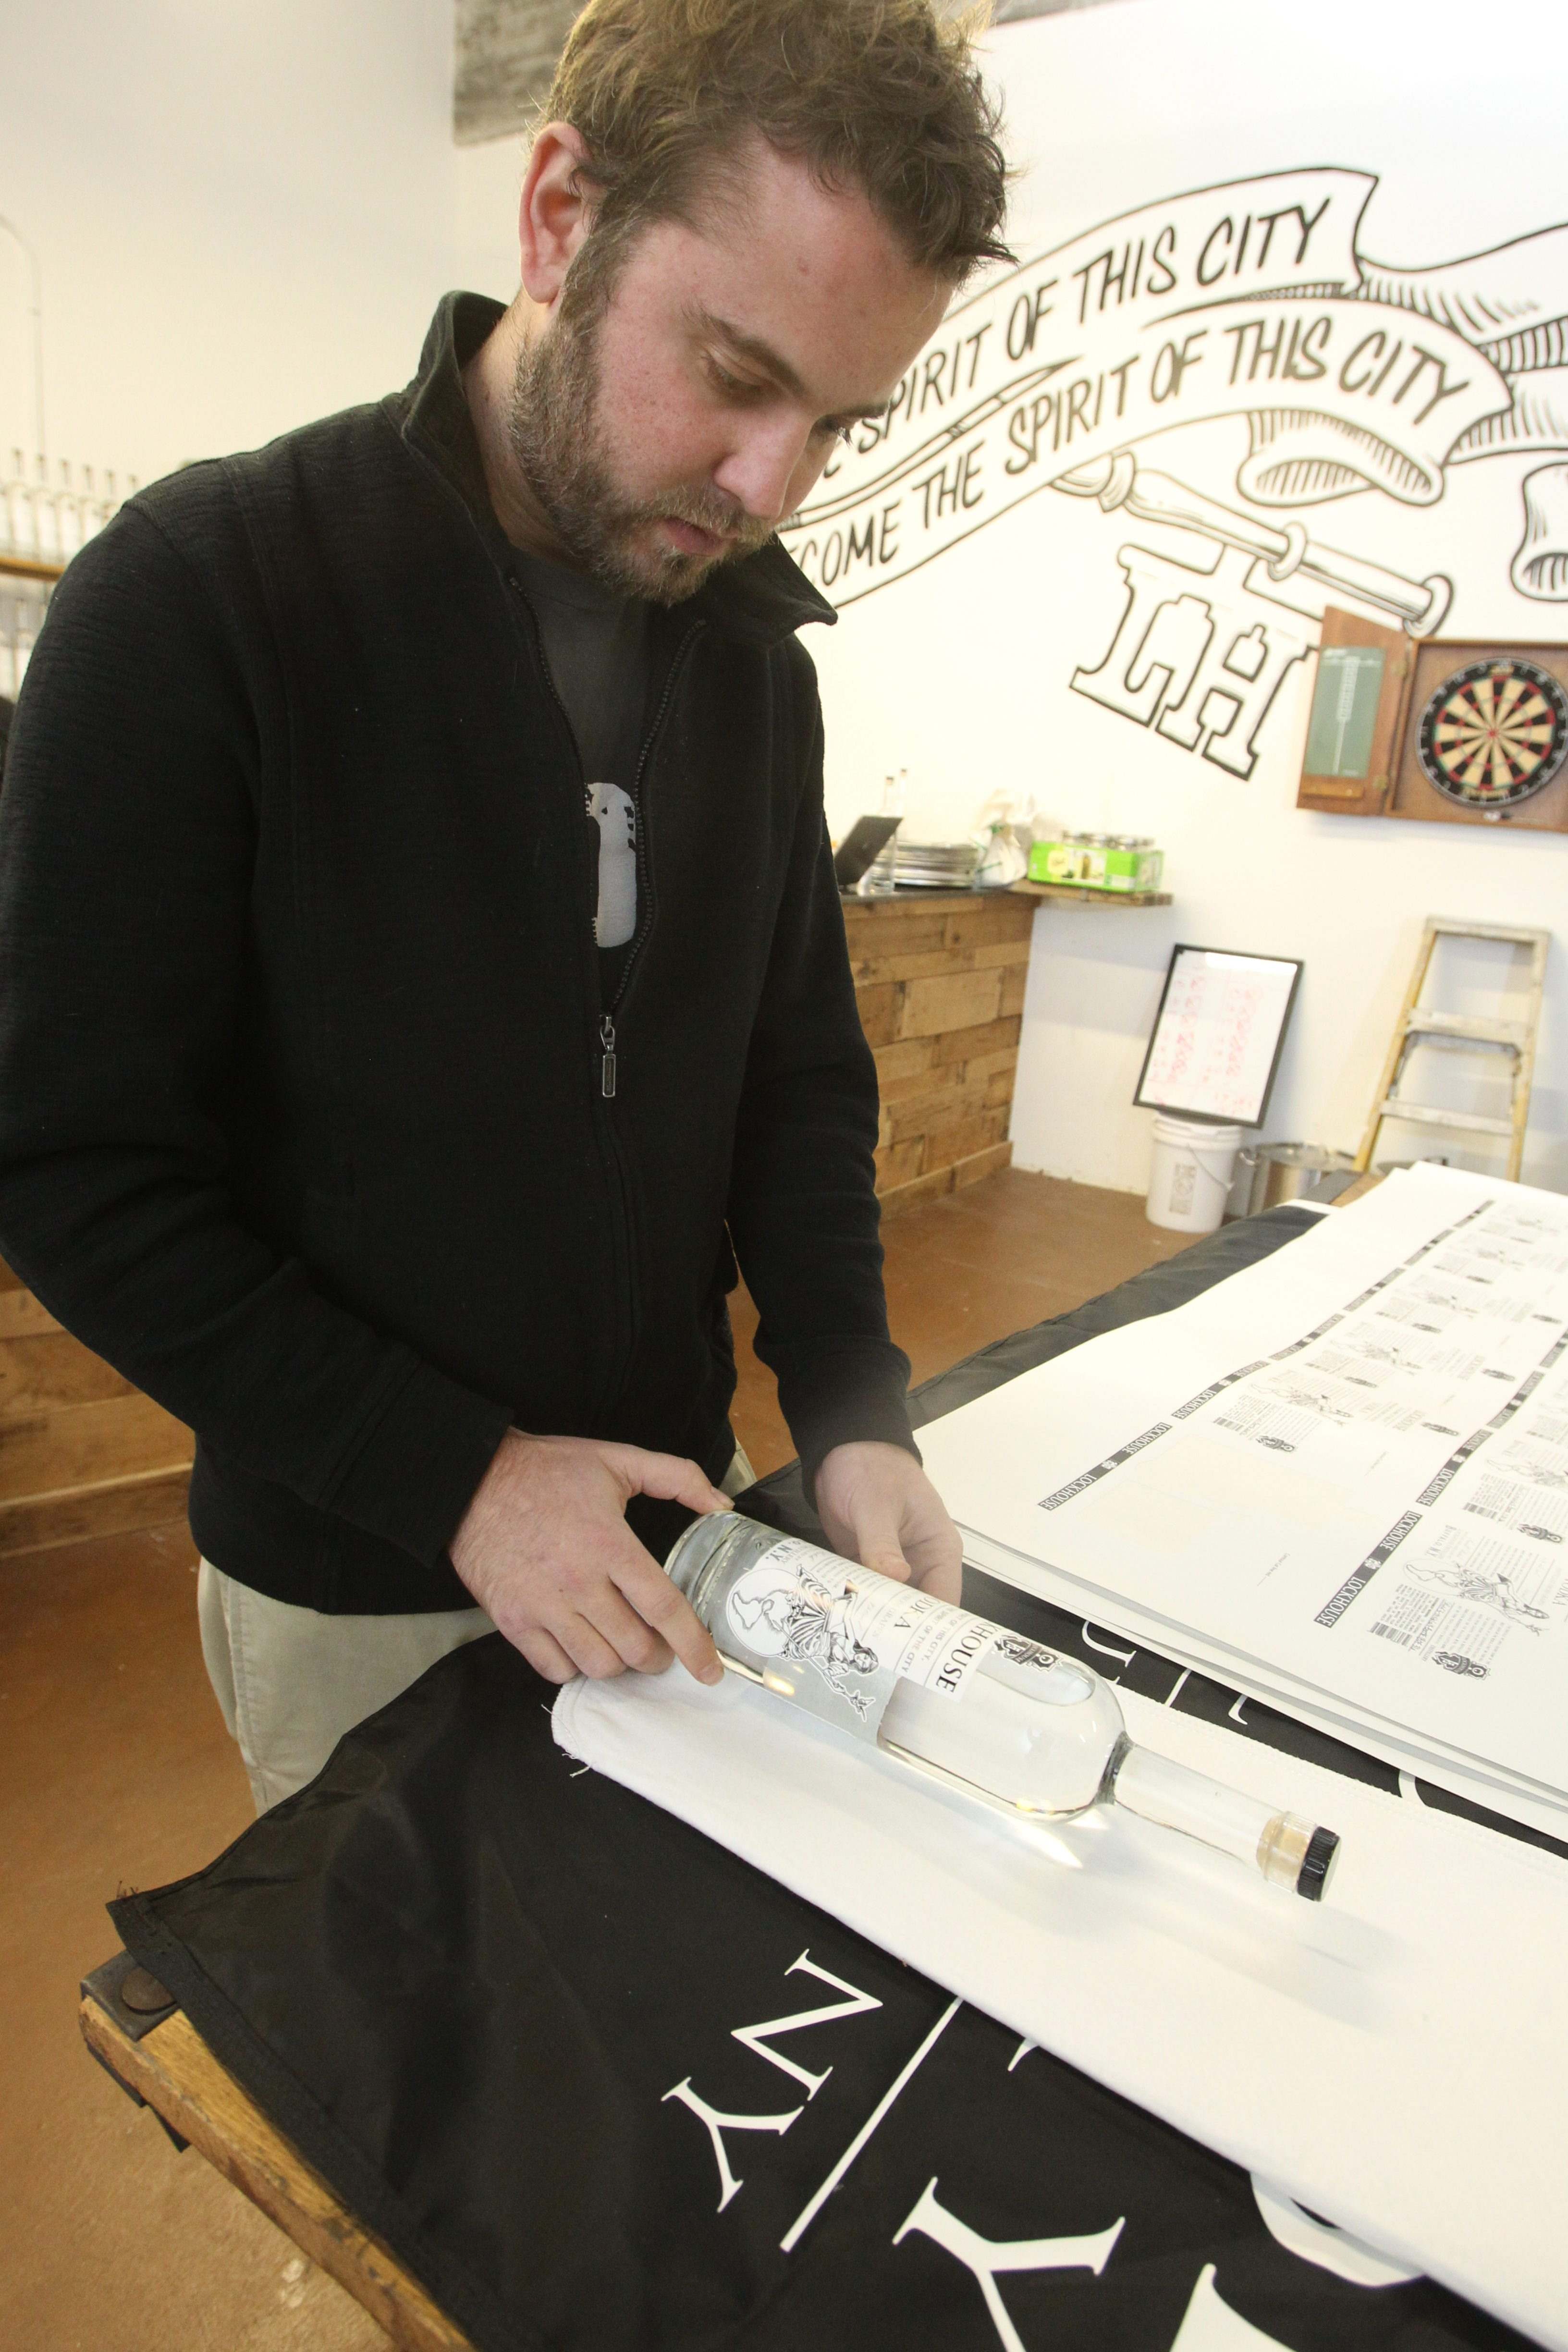 Lockhouse Distillery Vice President Chad Vesseller puts labeling on bottles of vodka at the distillery in the Great Arrow Building in Buffalo in late November.